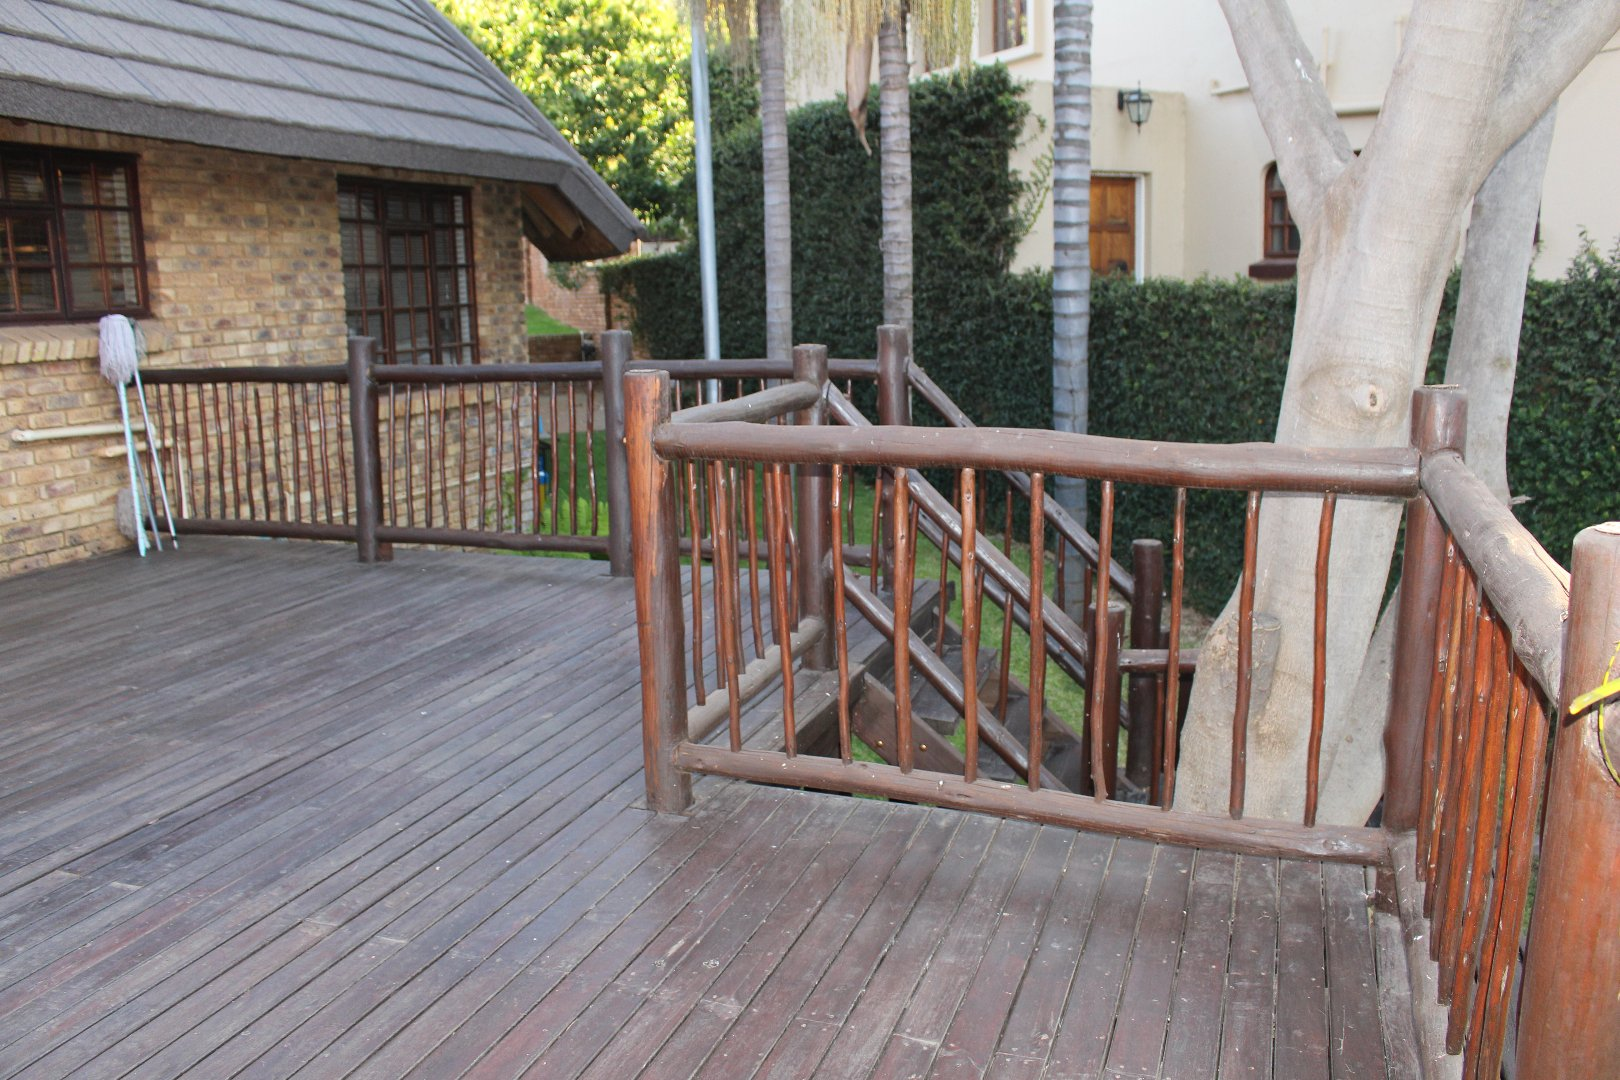 4 Bedroom House for sale in Montana Park ENT0058051 : photo#26